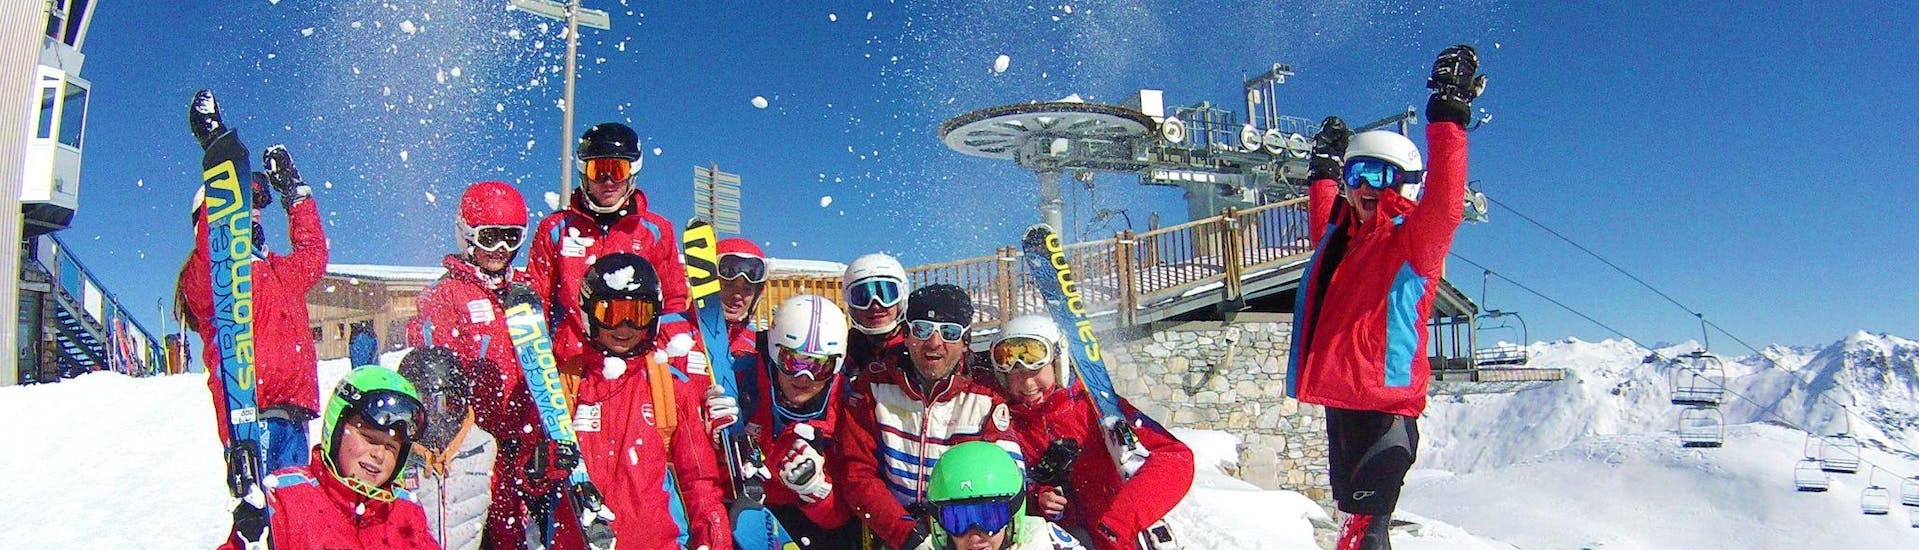 ski-lessons-for-teens-13-18-years-afternoon-holidays-esf-la-plagne-hero